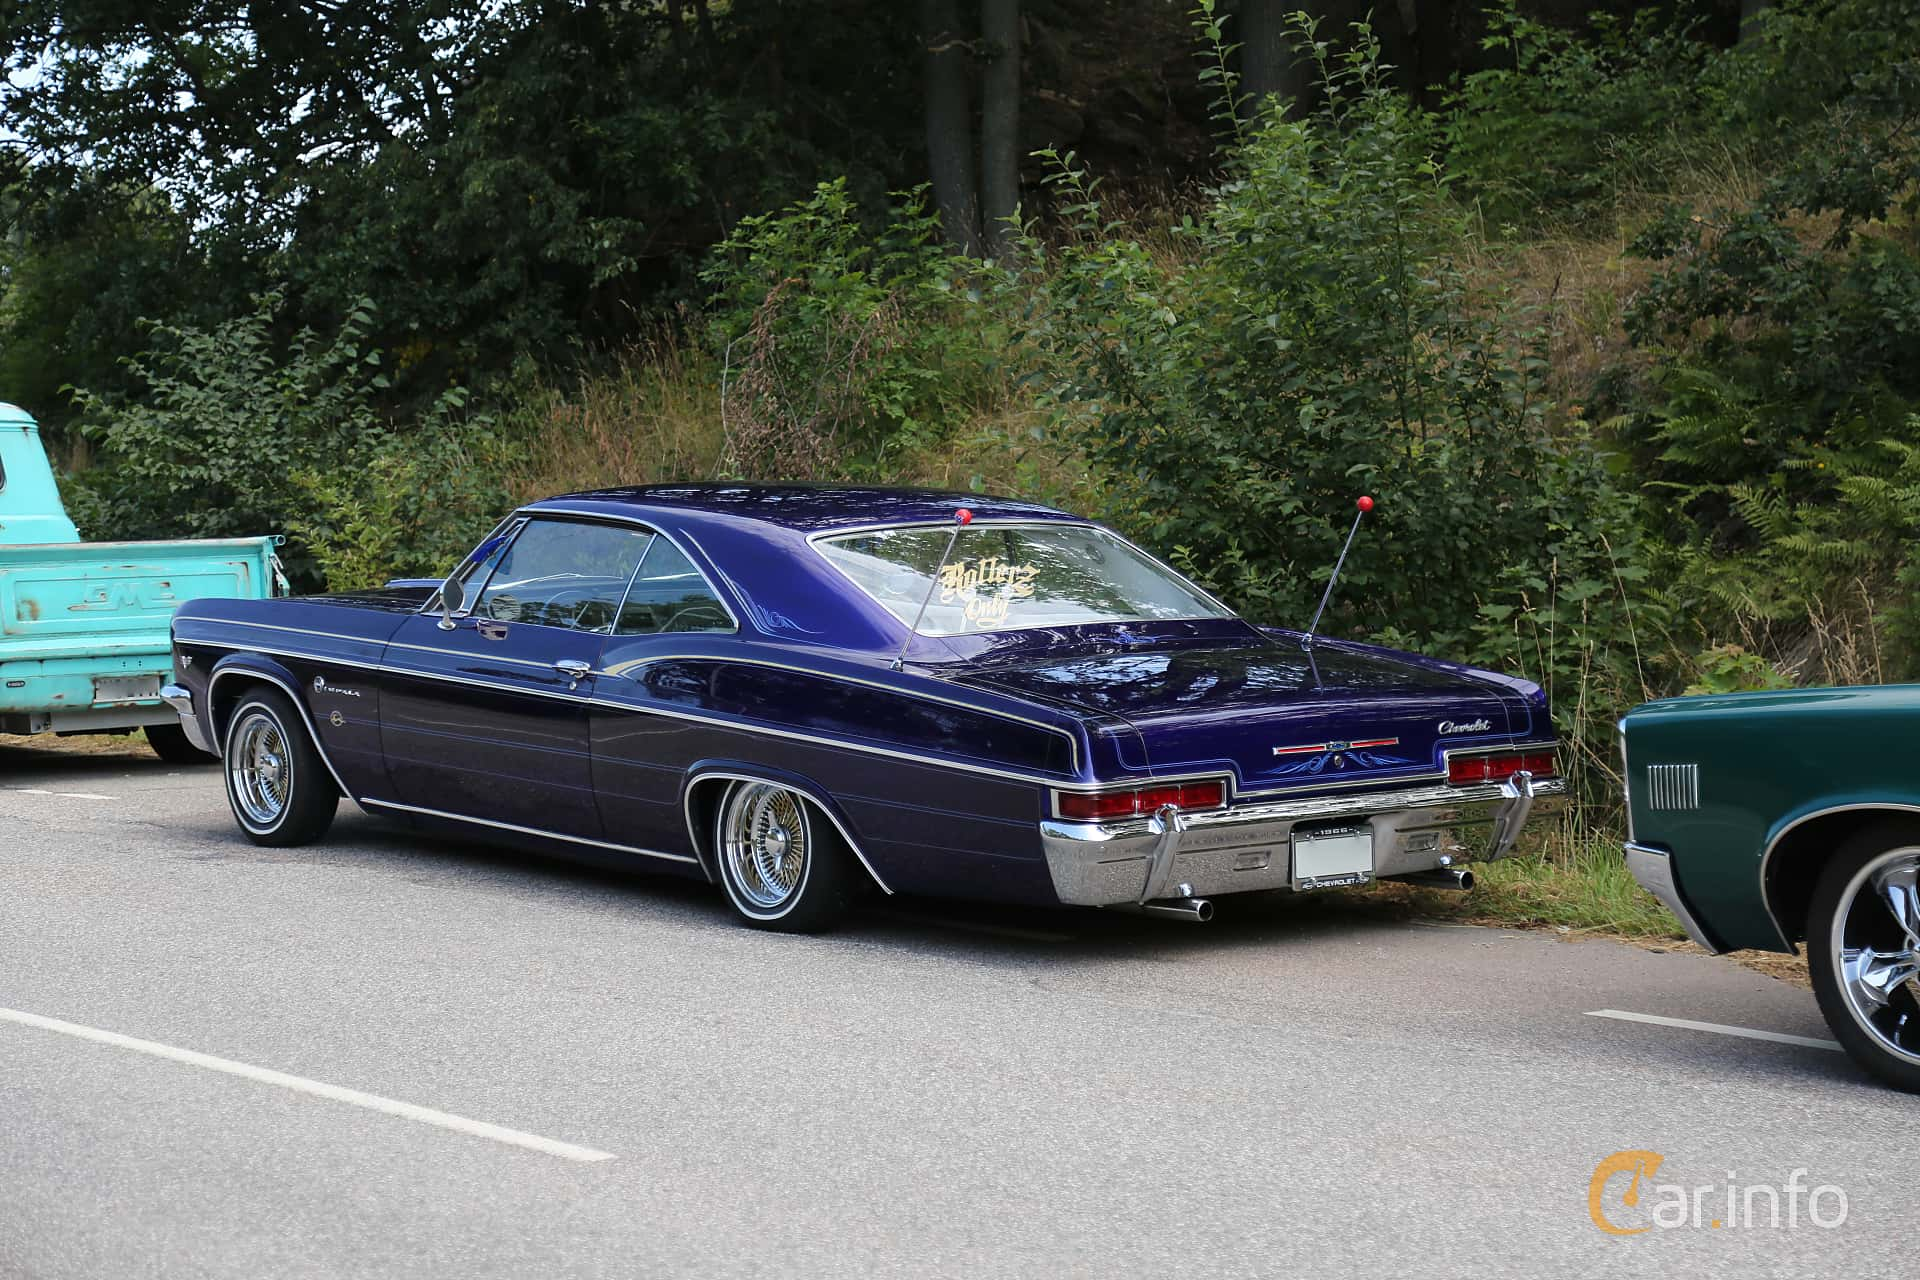 Chevrolet Impala Sport Coupé 4.6 V8 Manual, 198hp, 1966 at A-bombers - Old Style Weekend Backamo 2019